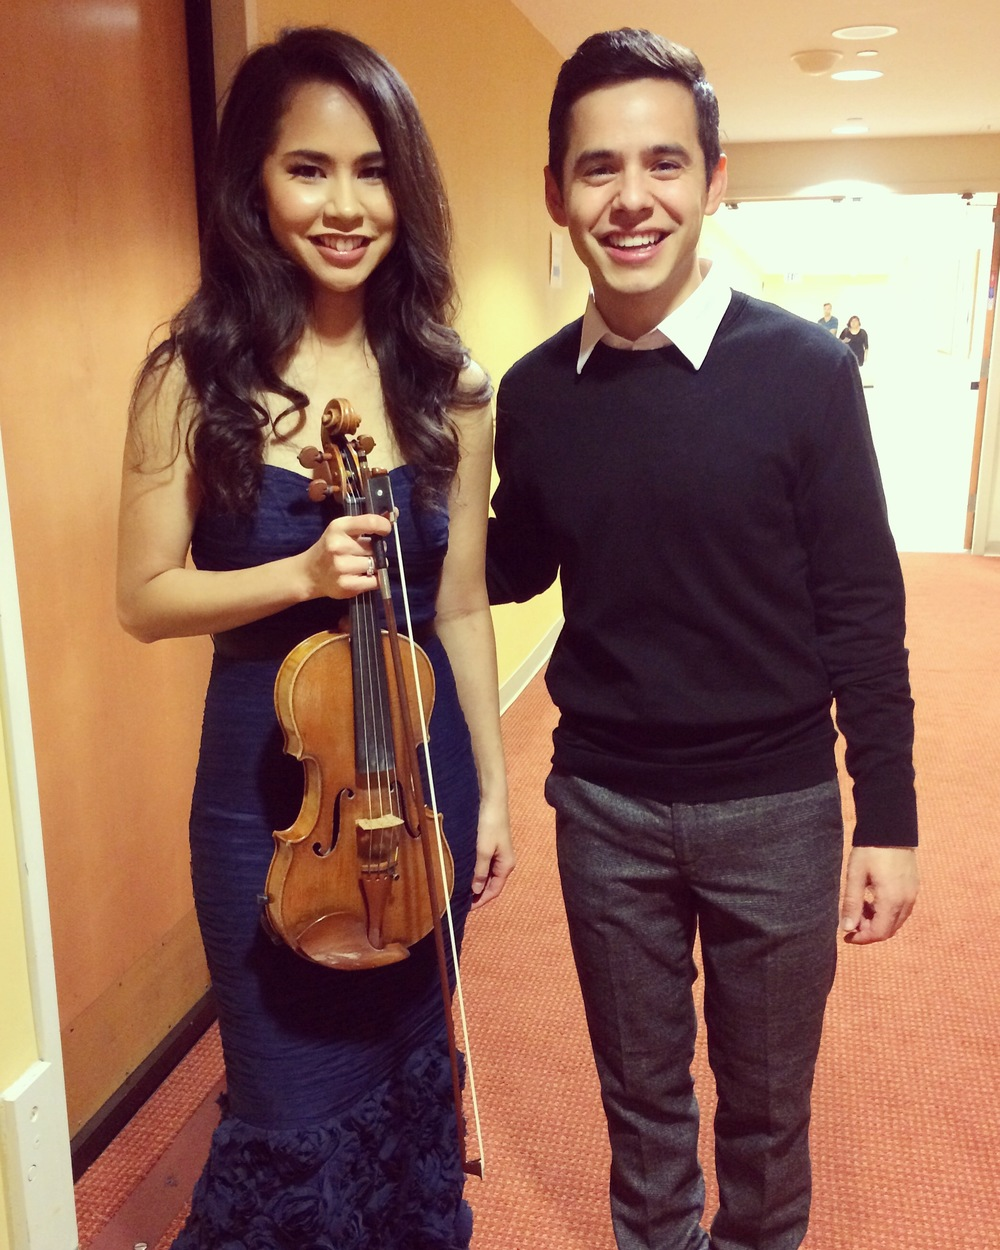 Post-performance for Nathan Pacheco with musical guest David Archuleta  October 2015  · Miami, FL